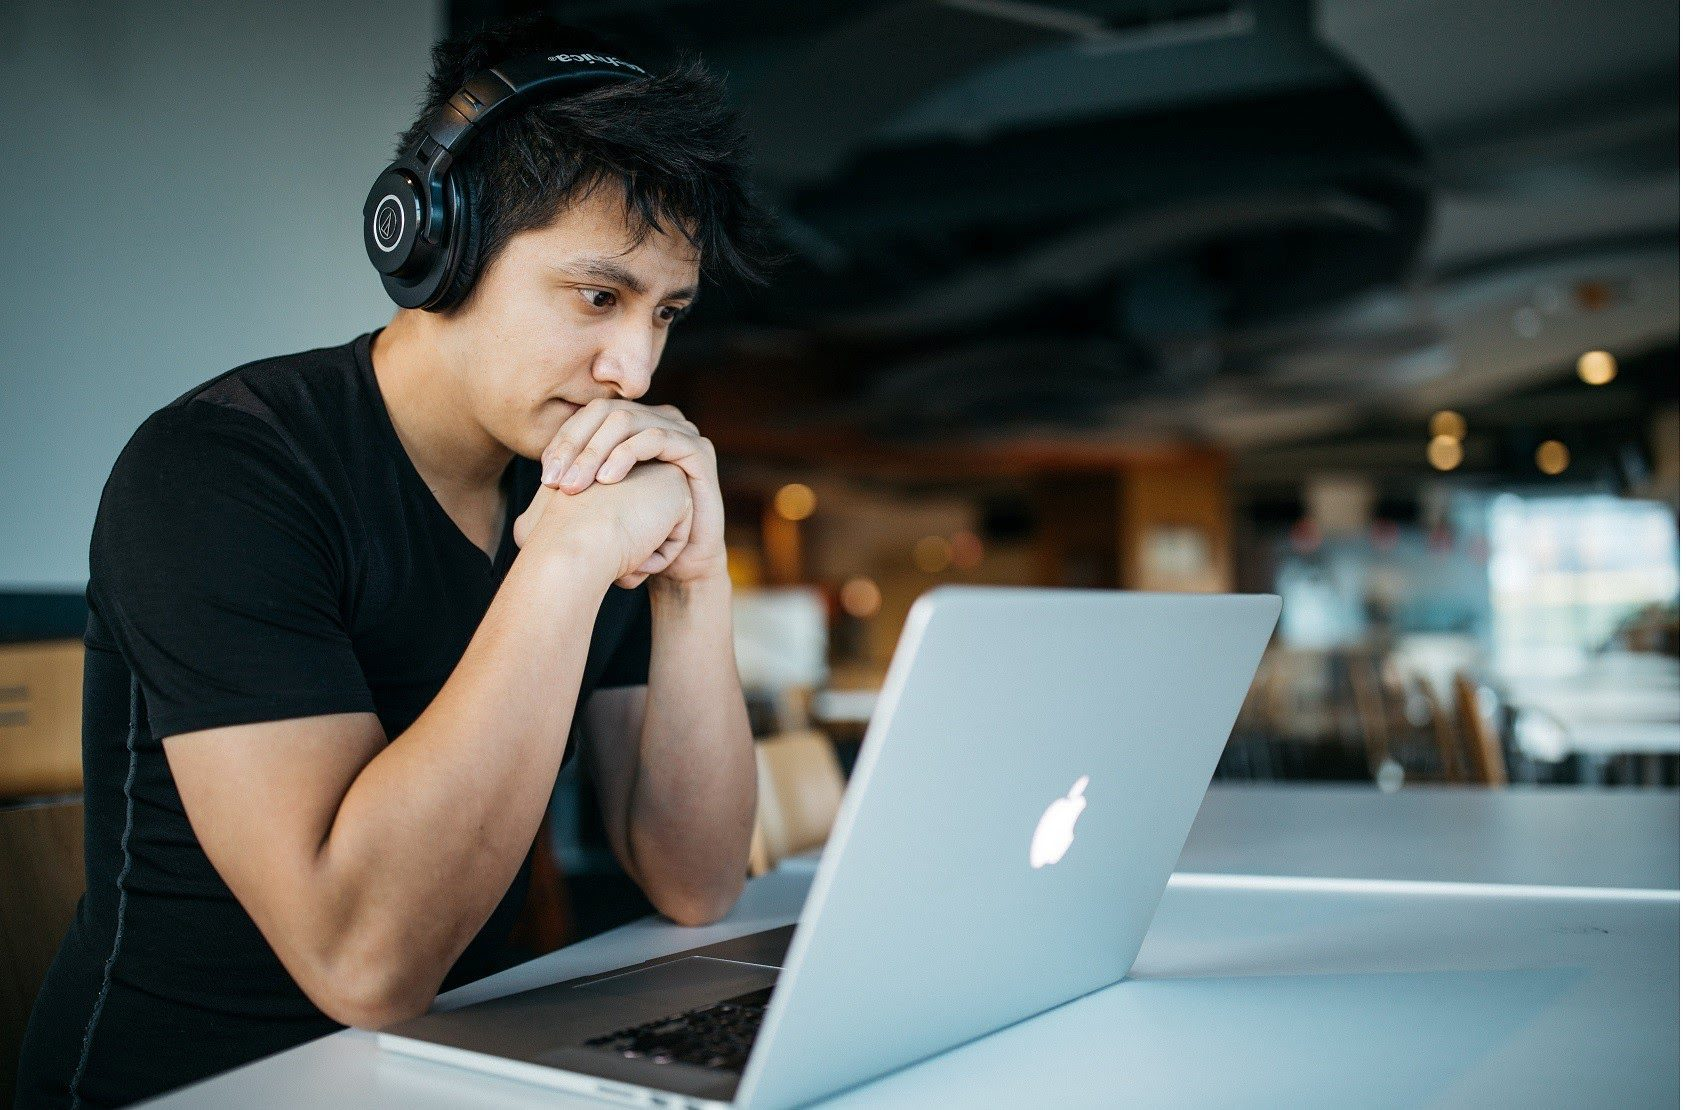 Man wearing headphones looking at a MacBook How To Find An Apprenticeship